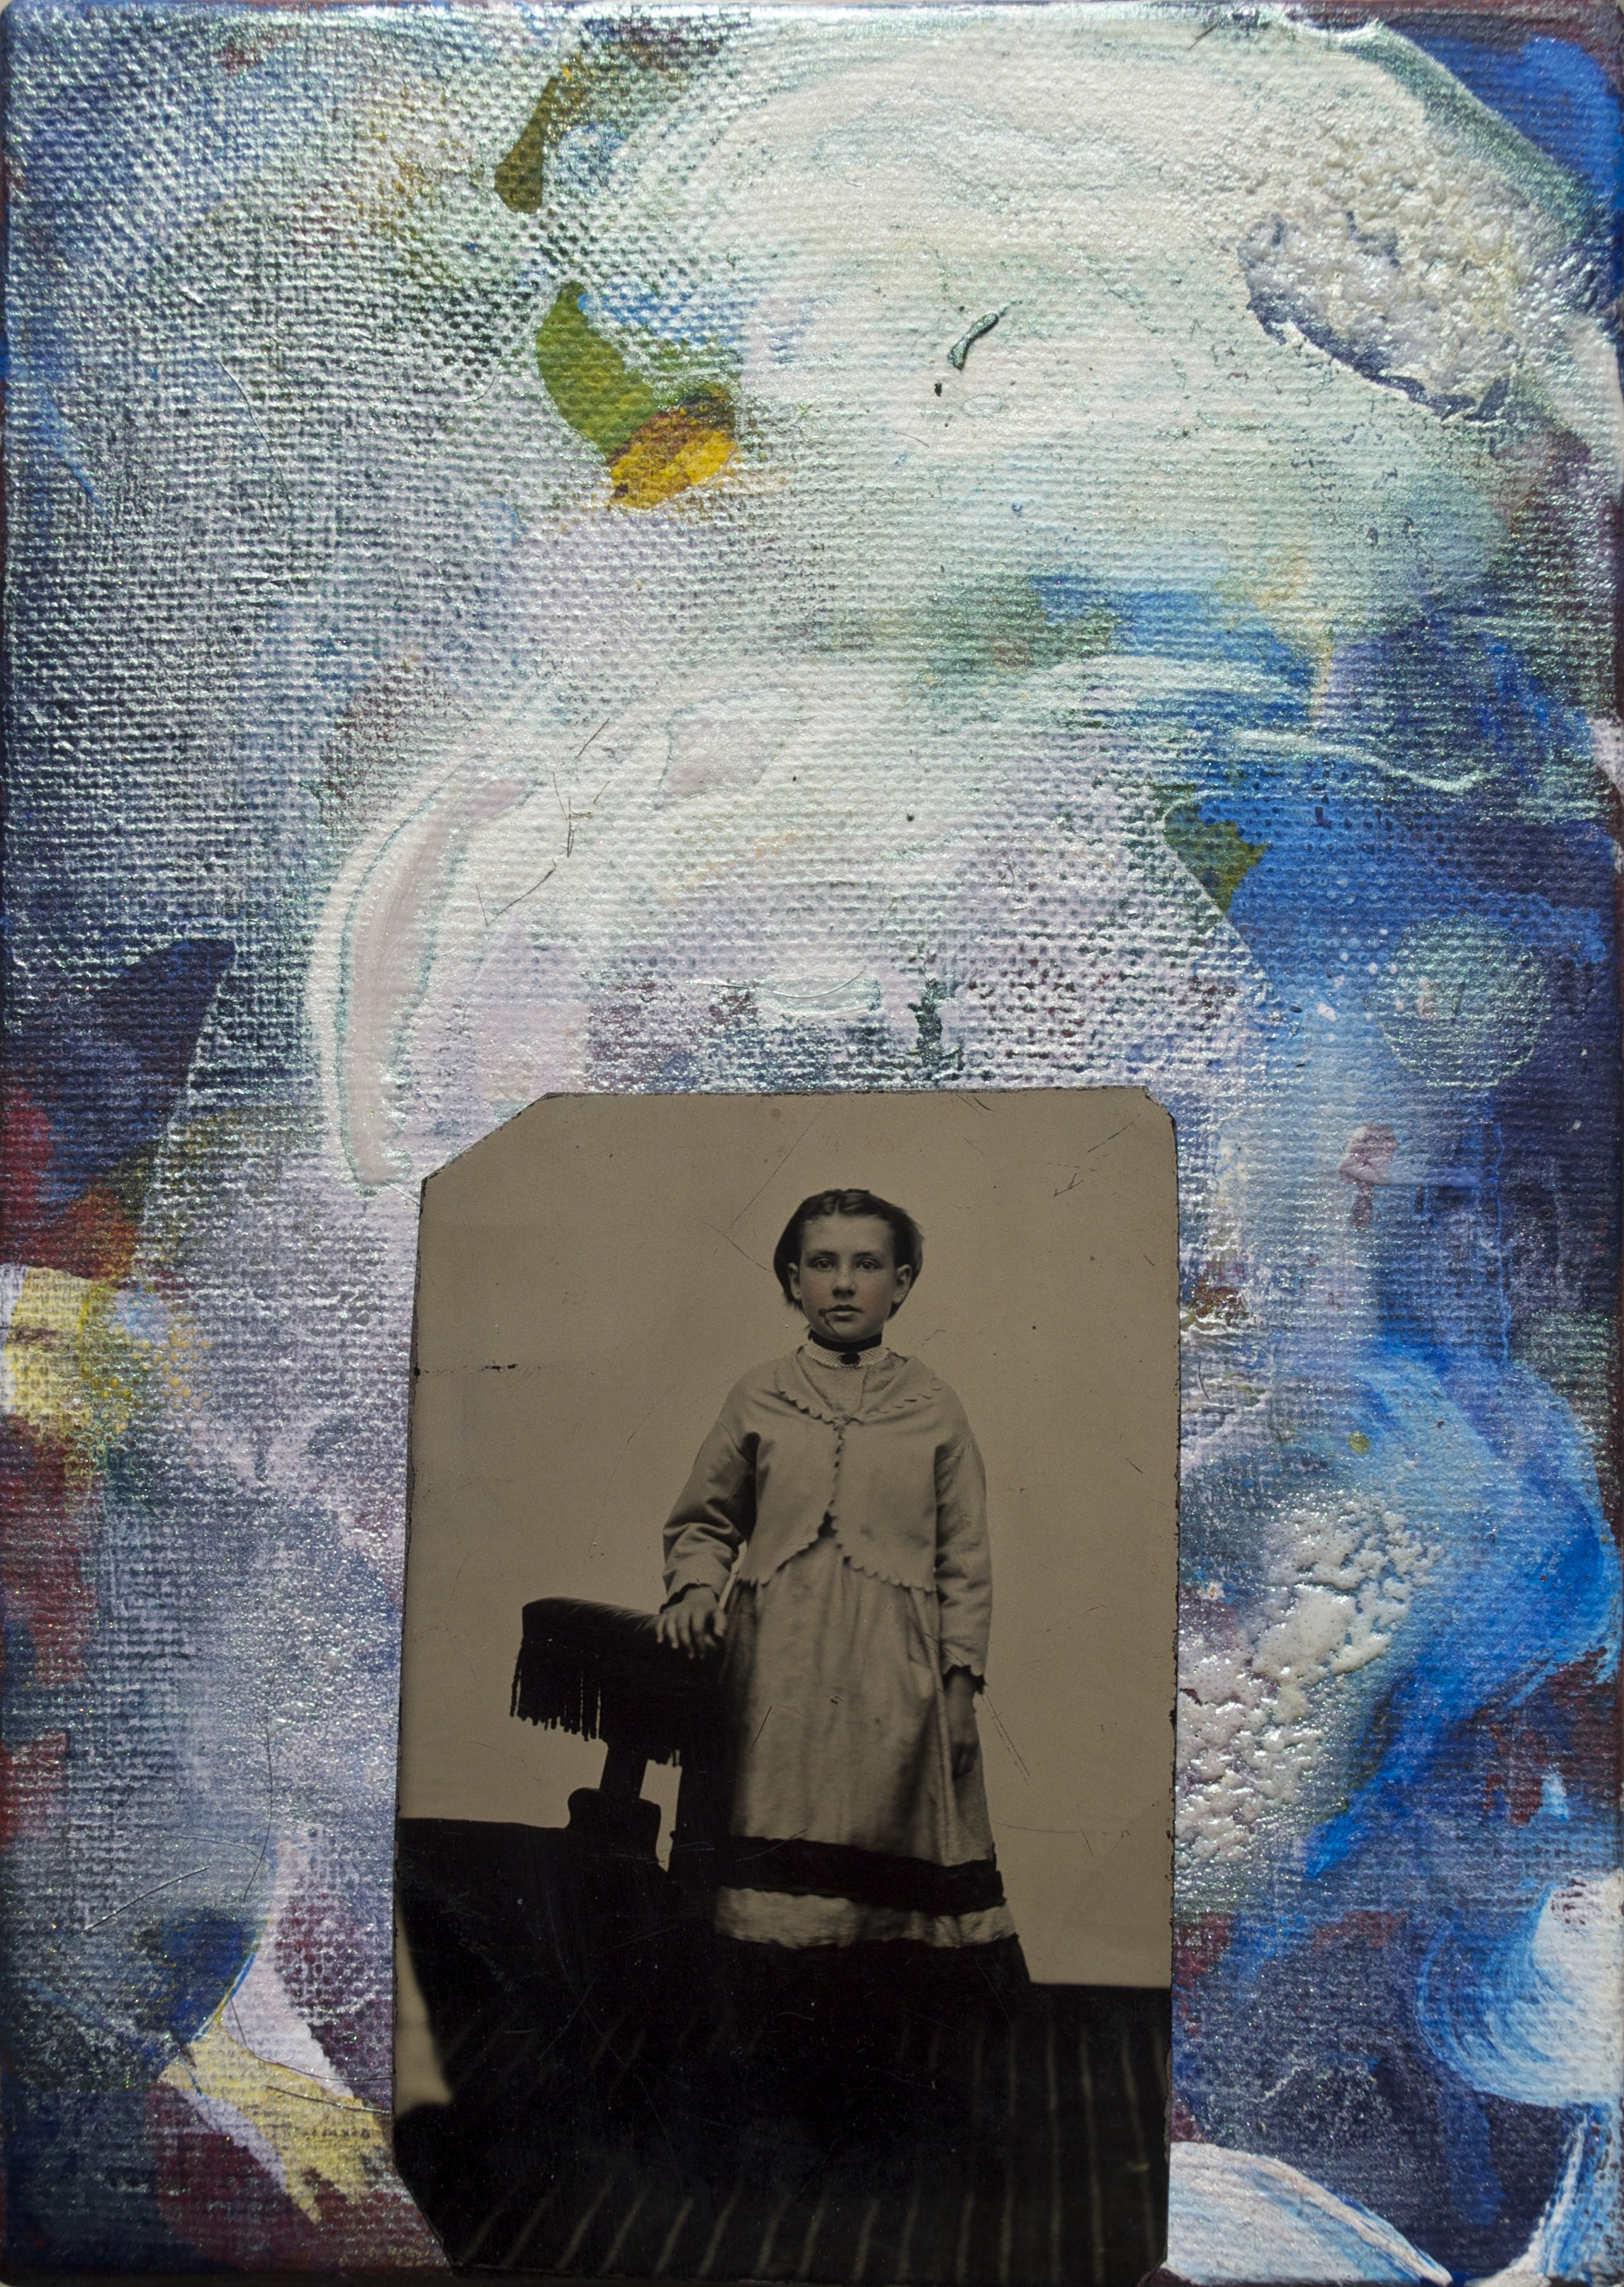 Time and Space Meant Nothing to the Young Helga Montalbán 2015, acrylic/canvas, tintype; 17.8 x 12.7 mm Copyright © Tennyson Woodbridge, 1963 to present